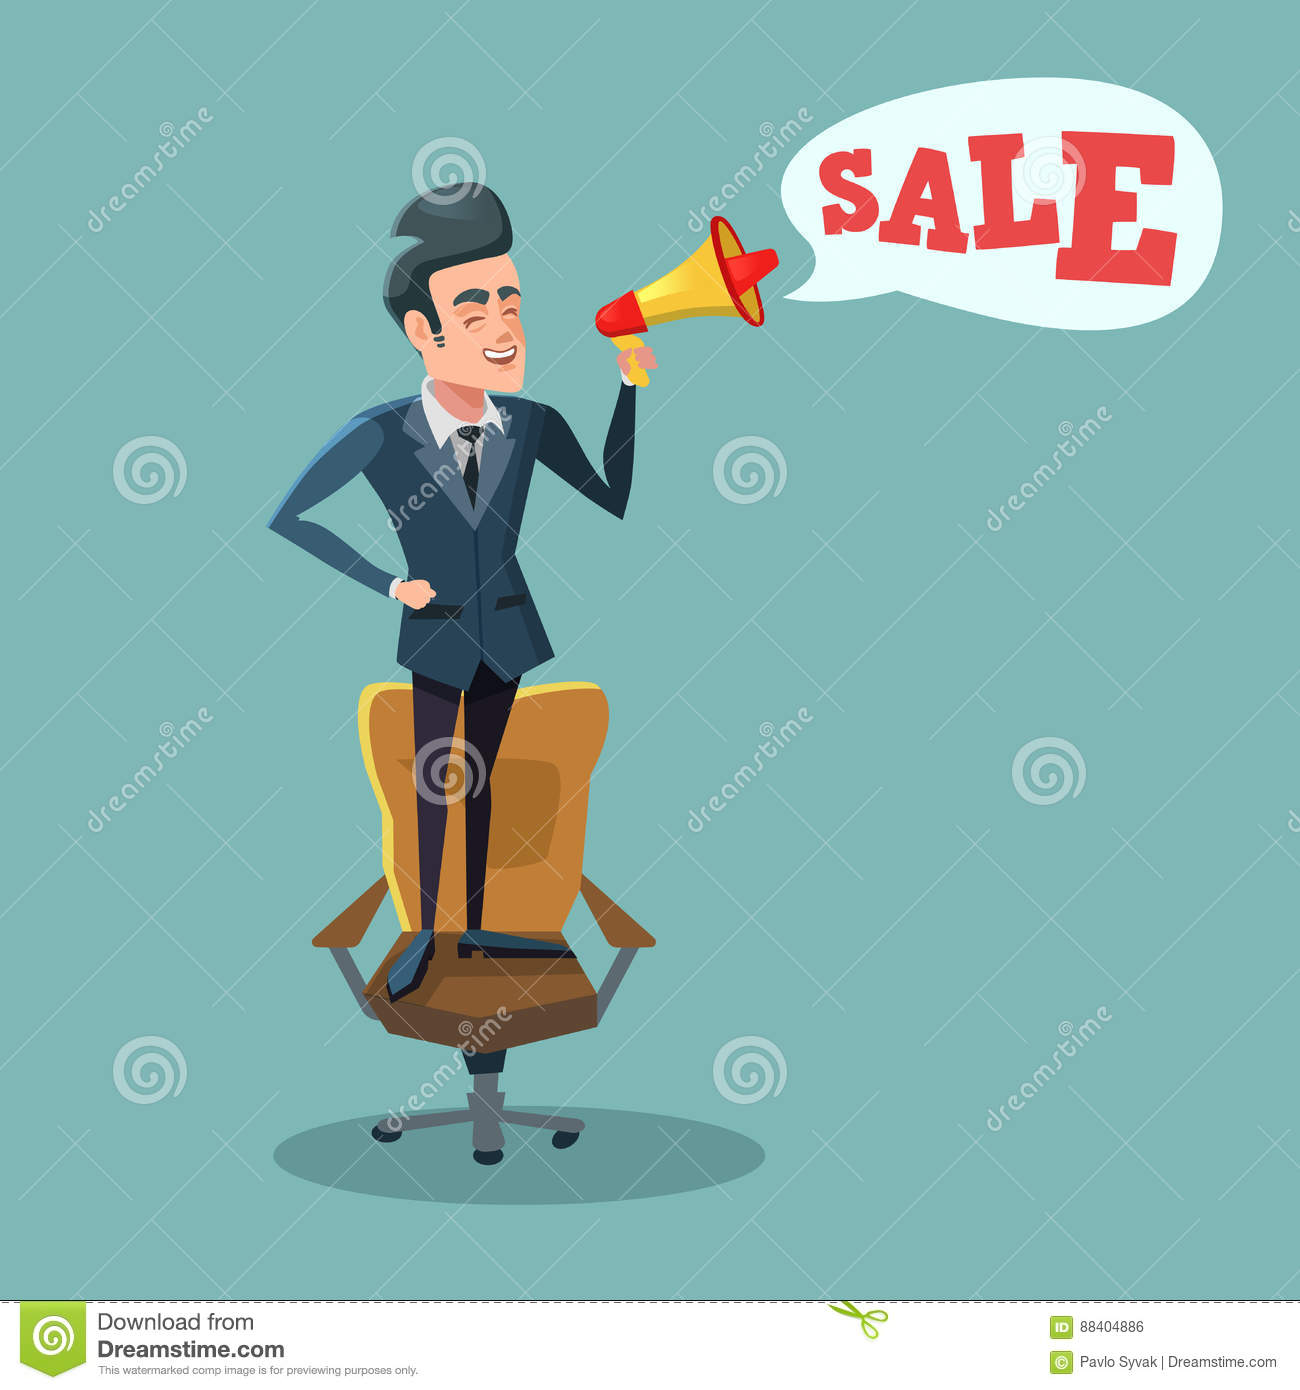 Cartoon Businessman Standing On Office Chair With Megaphone And